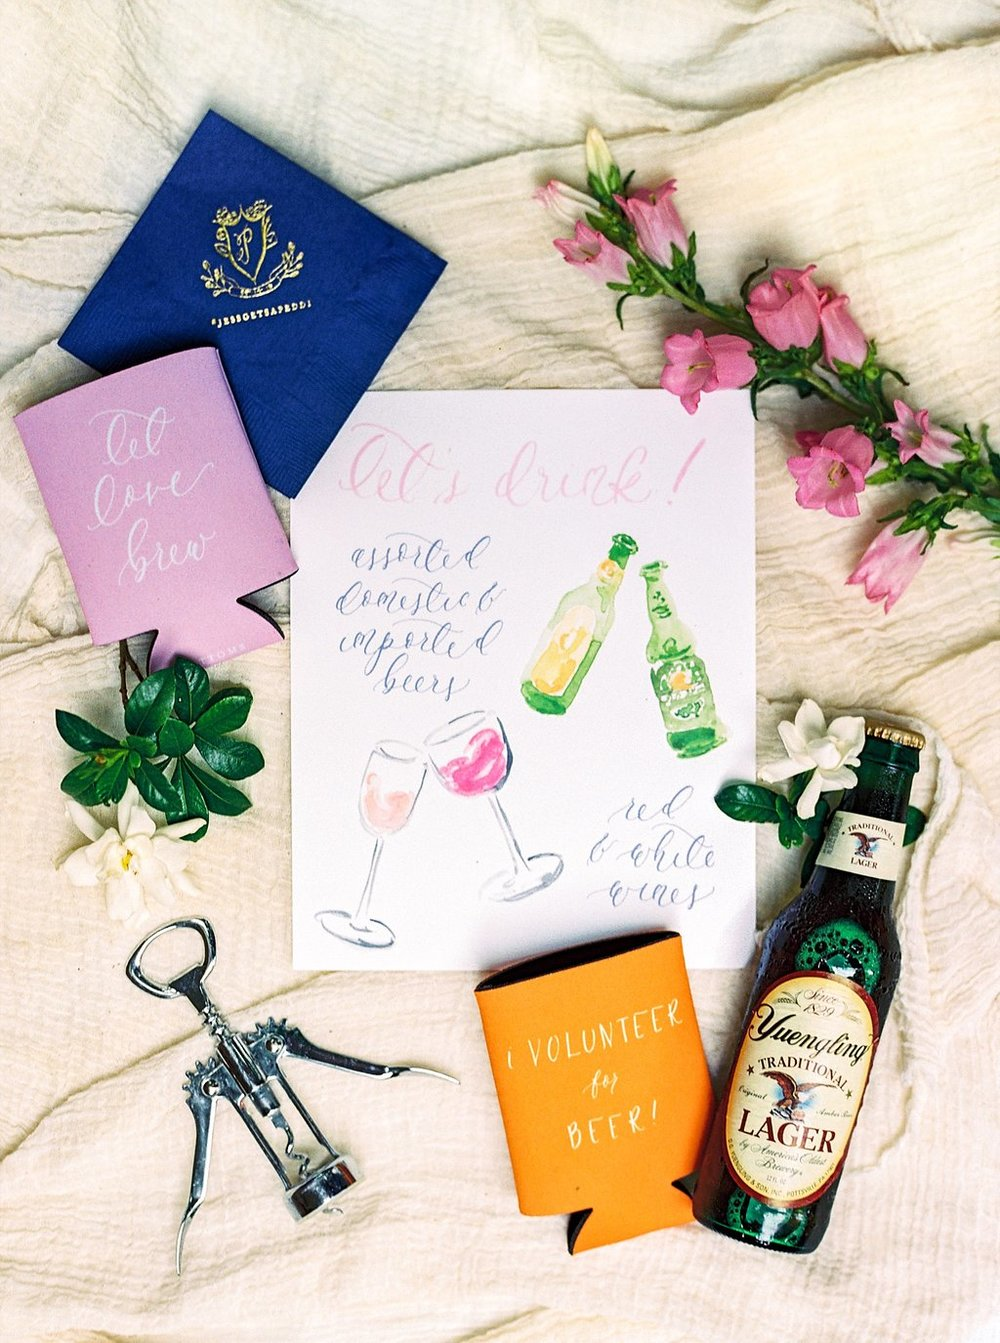 Custom Watercolor Bar Signage, Custom Calligraphy Wedding Koozies, and Custom Gold Foil Wedding Crest Cocktail Napkins | Blush and Navy Wedding with Fuchsia, French Blue and Gold Accents | Simply Jessica Marie's Southern Wedding at Gettysvue Golf Course and Country Club in Knoxville Tennessee | Photo by Perry Vaile Photography